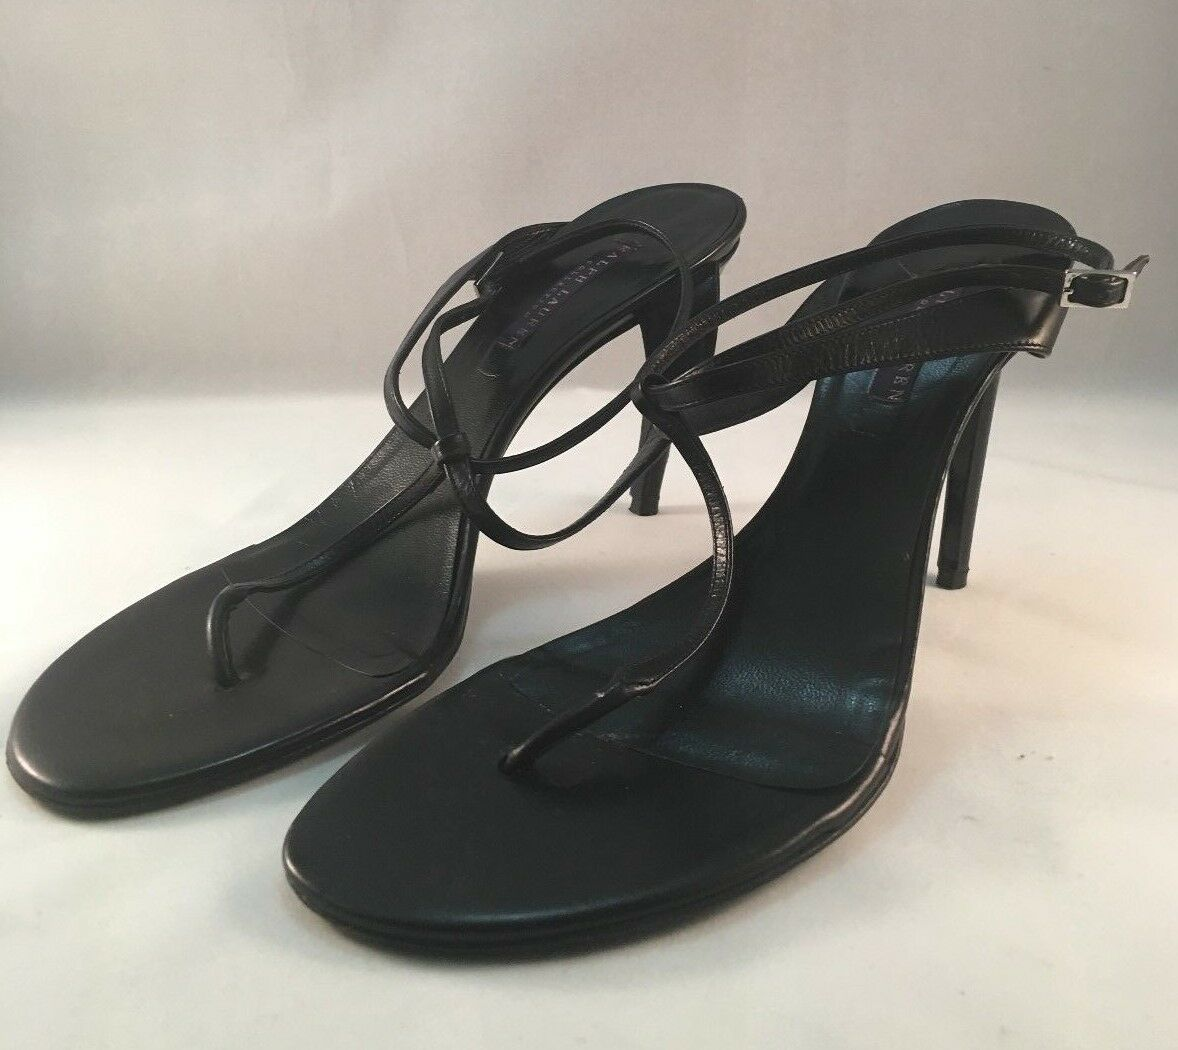 Ralph Ralph Ralph Lauren collection Size 9.5 strappy sandlel antique 2001 b33189